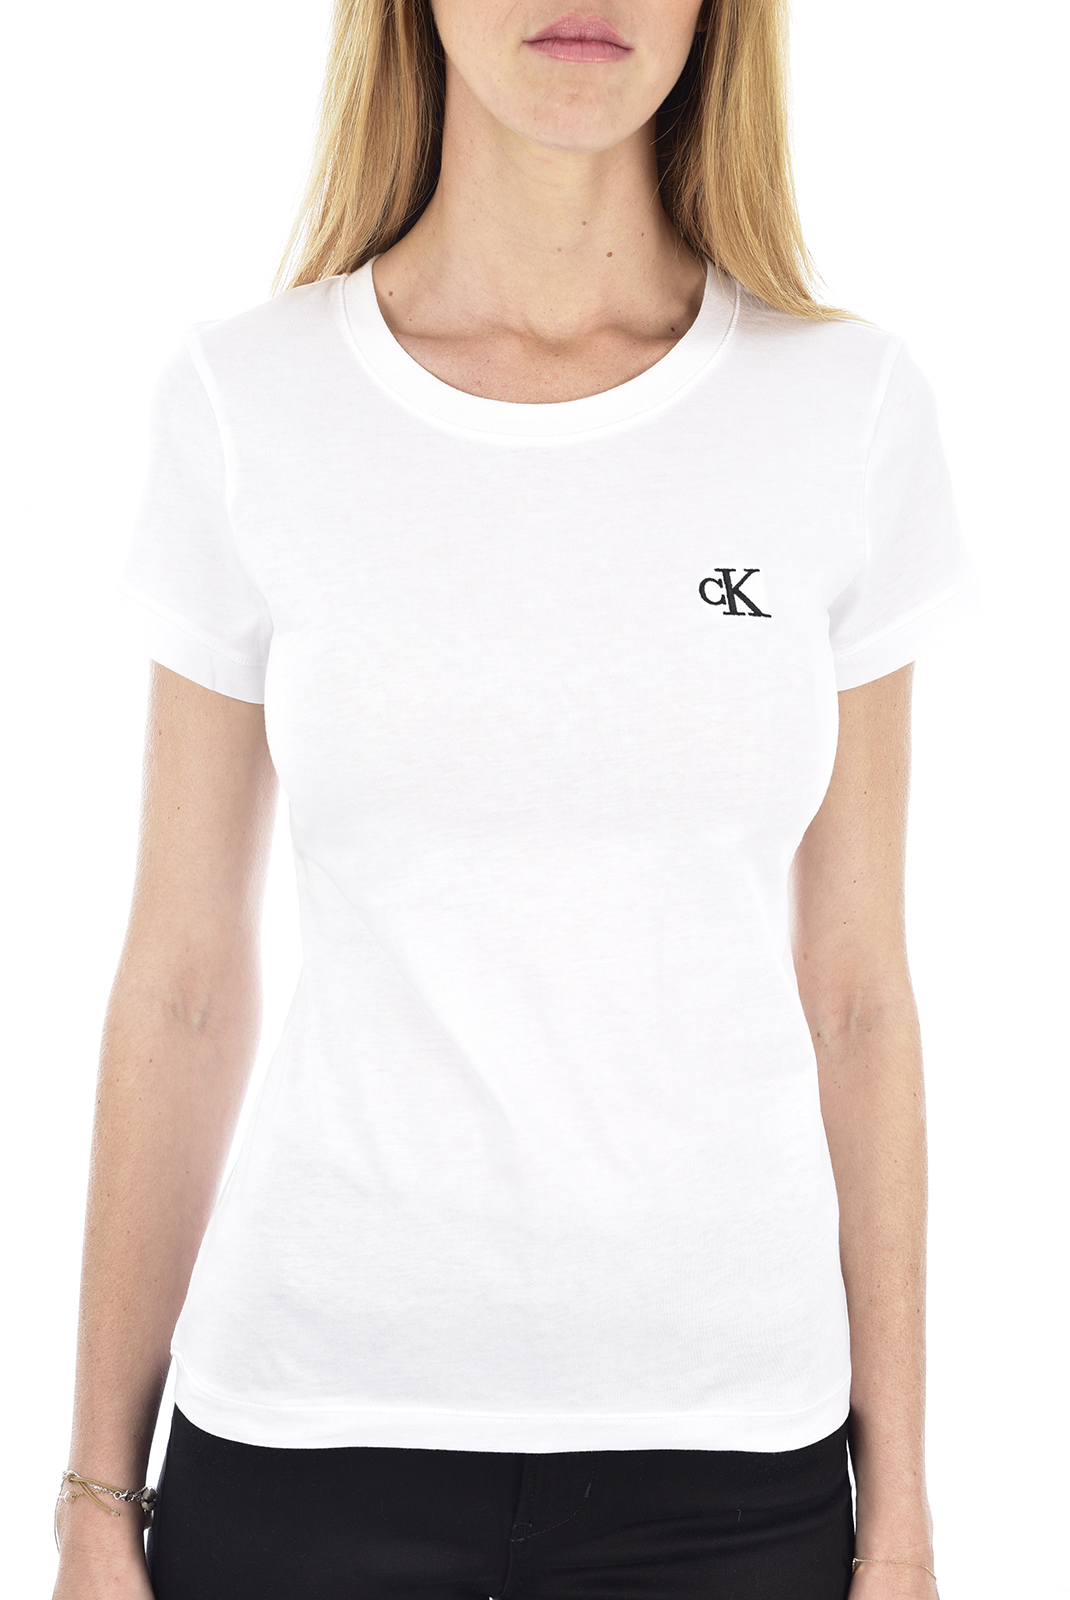 Tee shirt  Calvin klein J20J212883 EMBROIDERY YAF BRIGHT WHITE